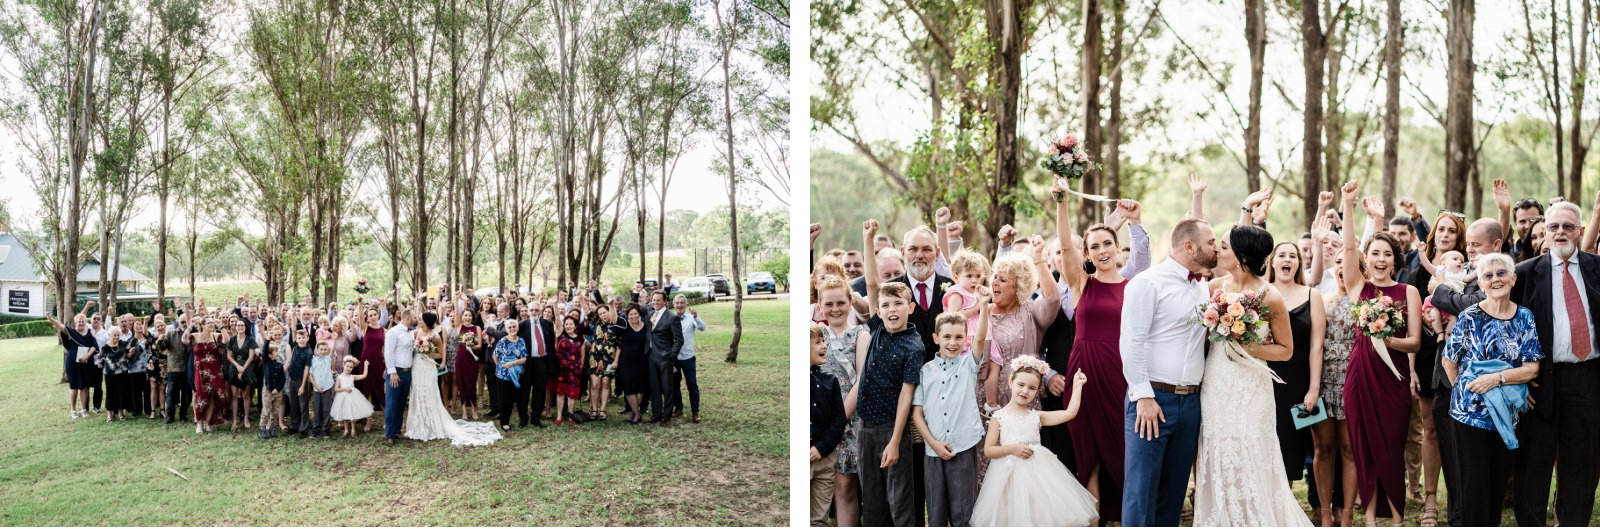 wandin-valley-estate-winery-lovedale-wedding-hunter-valley-wedding-photographer-37